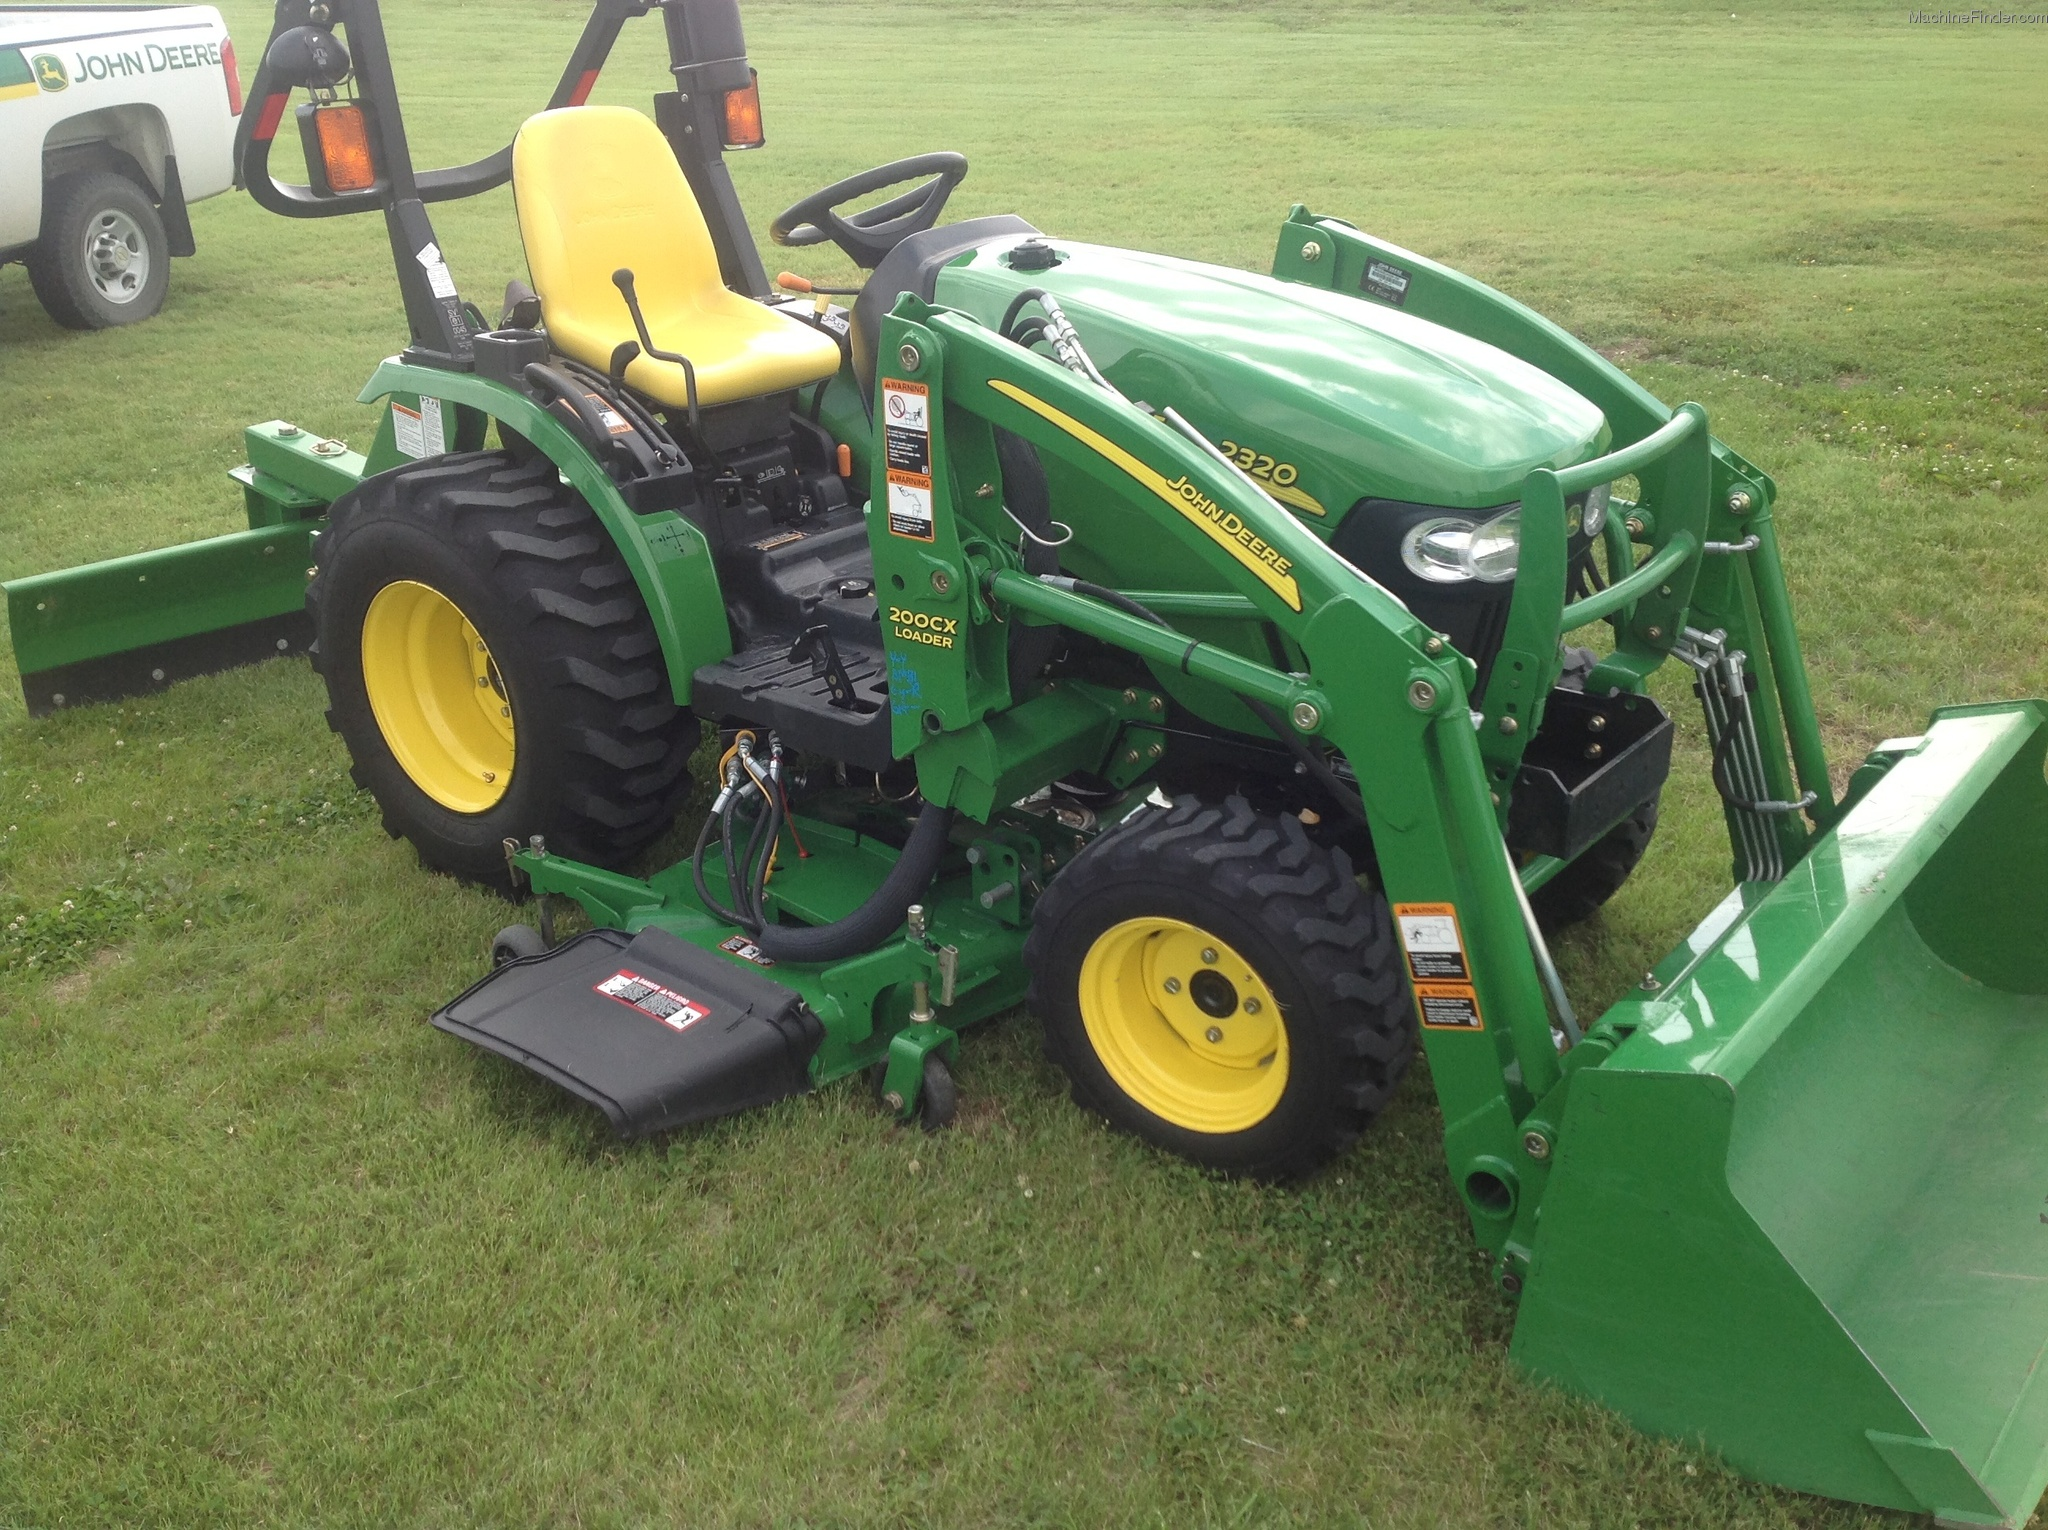 2008 john deere 2320 tractors compact 1 40hp john. Black Bedroom Furniture Sets. Home Design Ideas